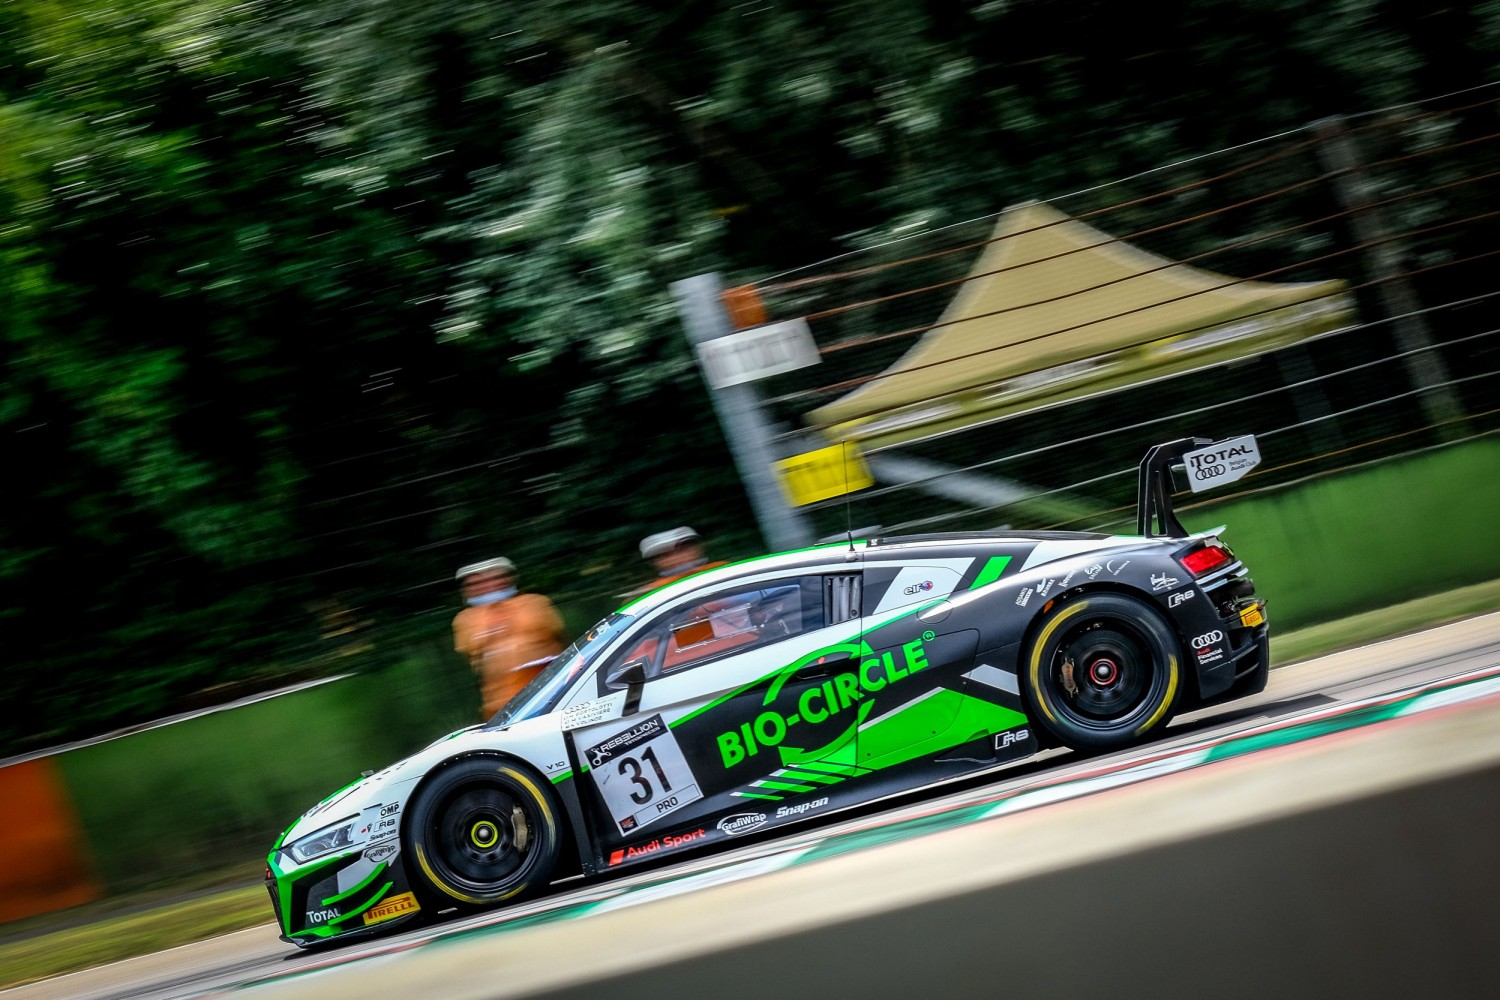 2020 season officially underway as GT World Challenge Europe Powered by AWS hits the track at Imola